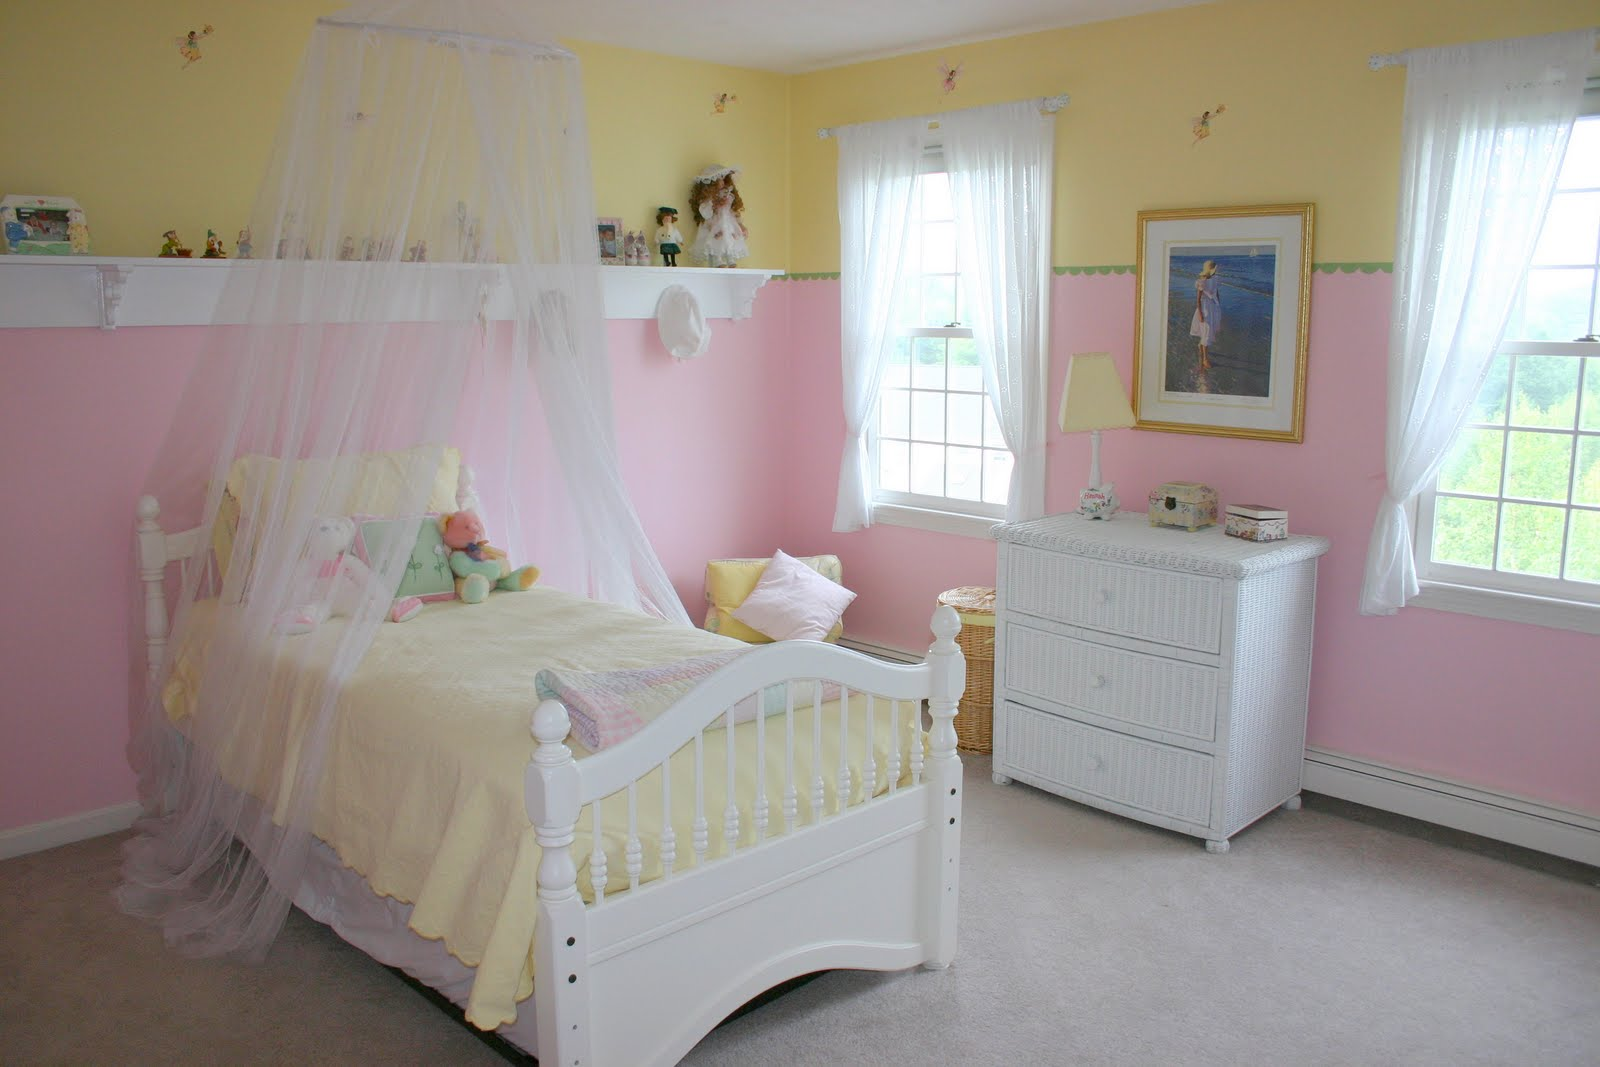 4 Year Bedroom Ideas: 14 Images Of Beds For 10 Year Olds